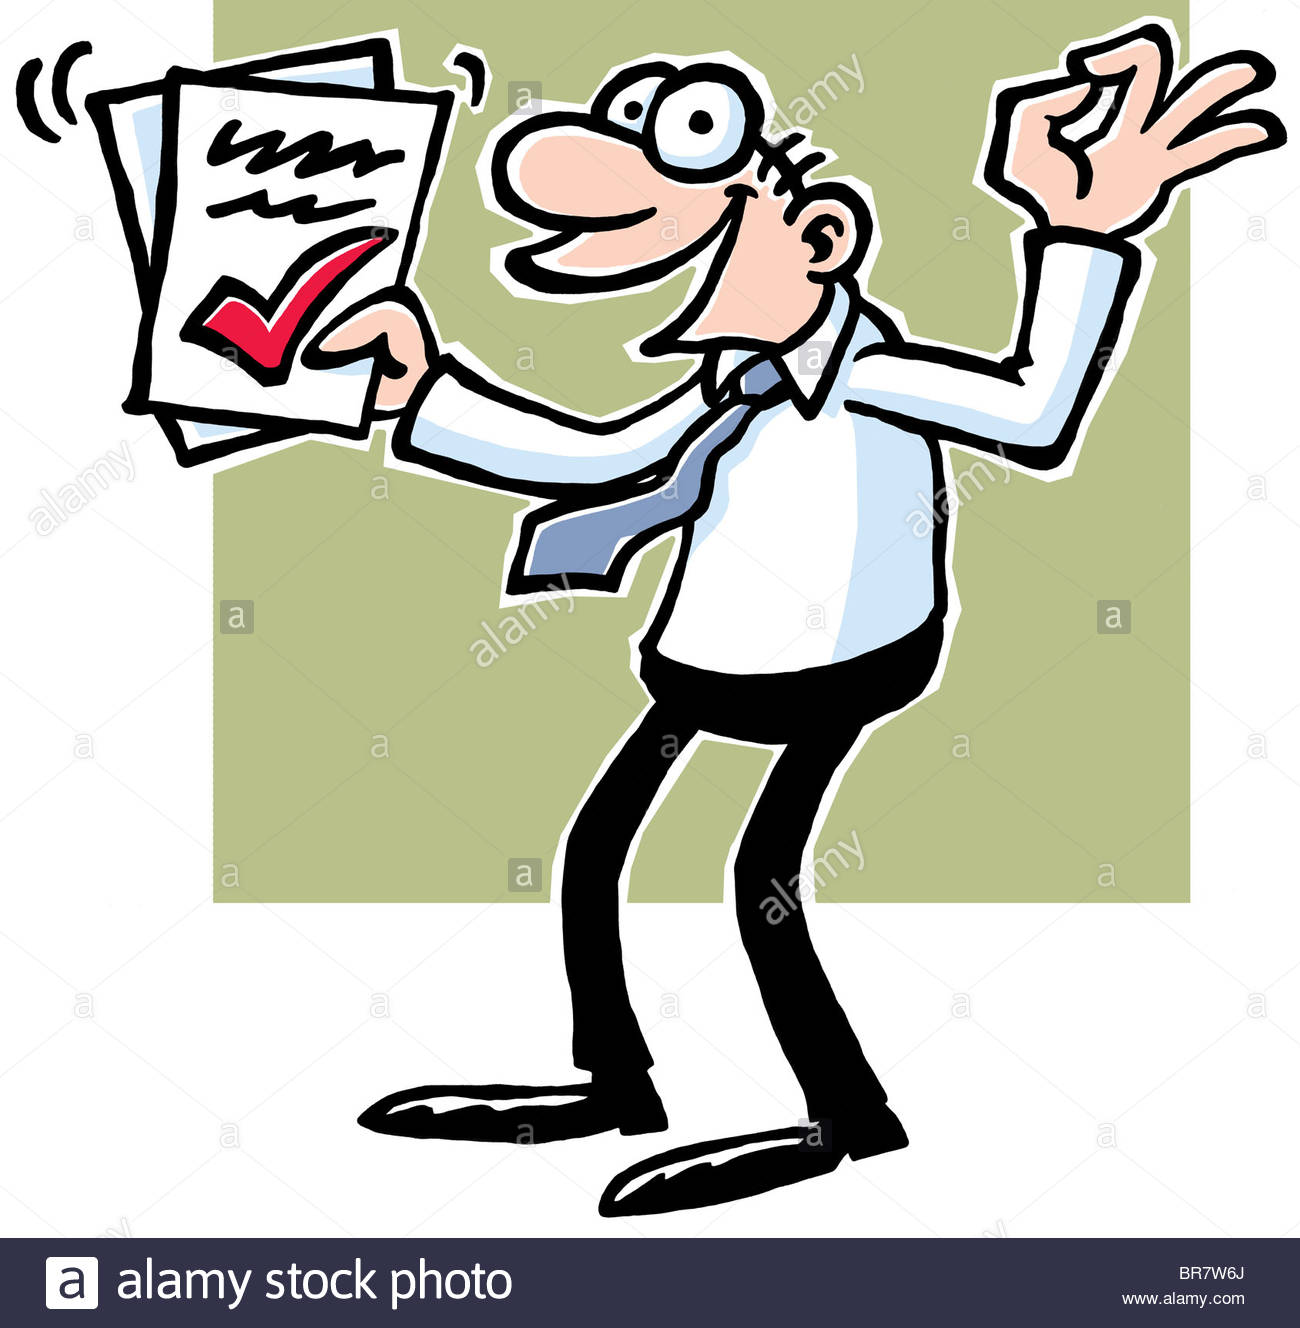 1300x1328 A Cartoon Drawing Of A Man Wearing A Shirt And Tie Holding